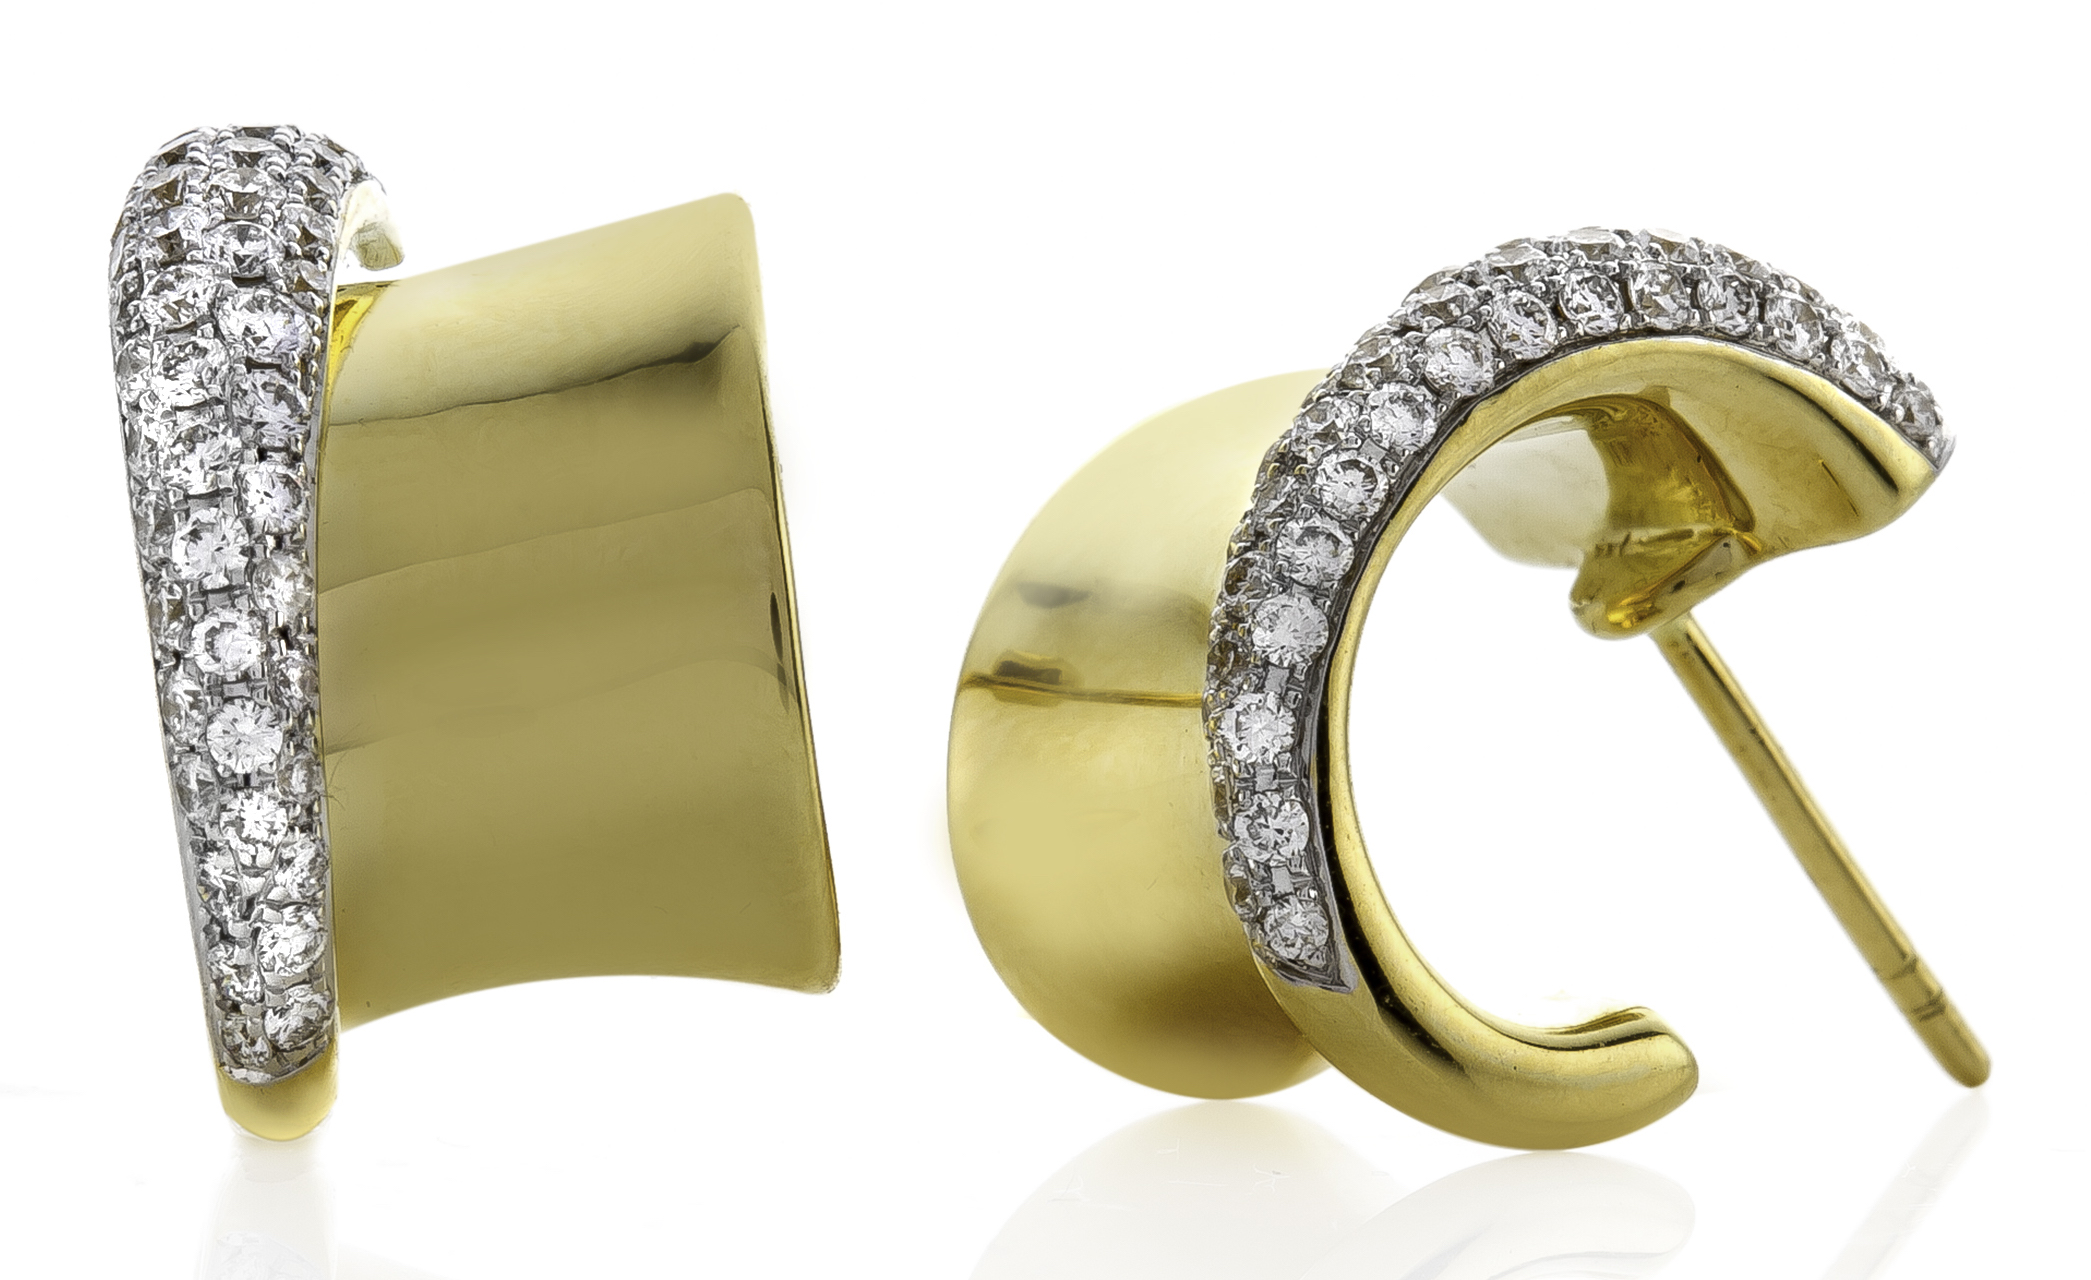 Rudoilf Friedmann gold earrings | JCK On Your Market